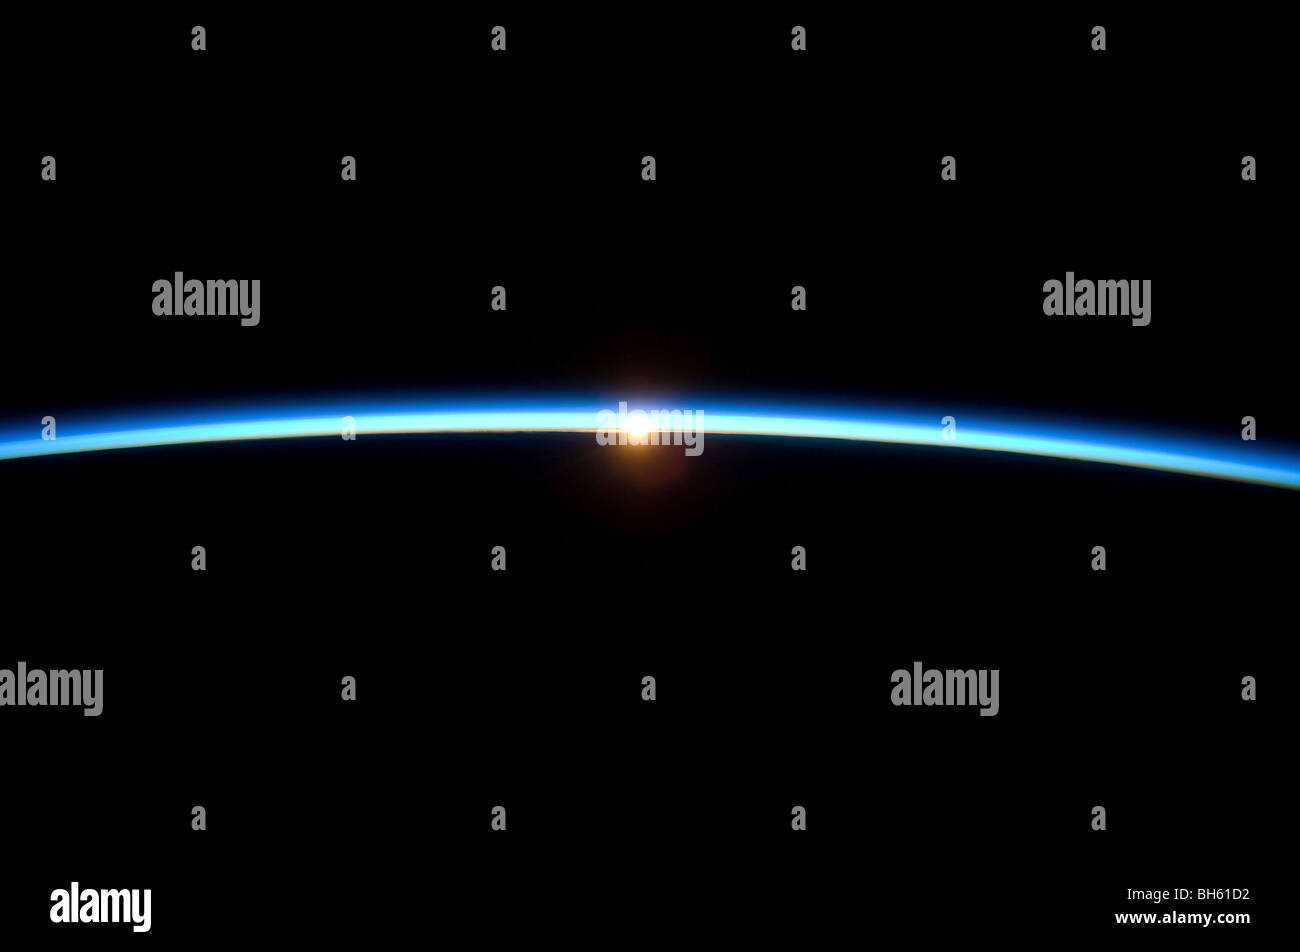 November 23, 2009 - The thin line of Earth's atmosphere and the setting sun. - Stock Image